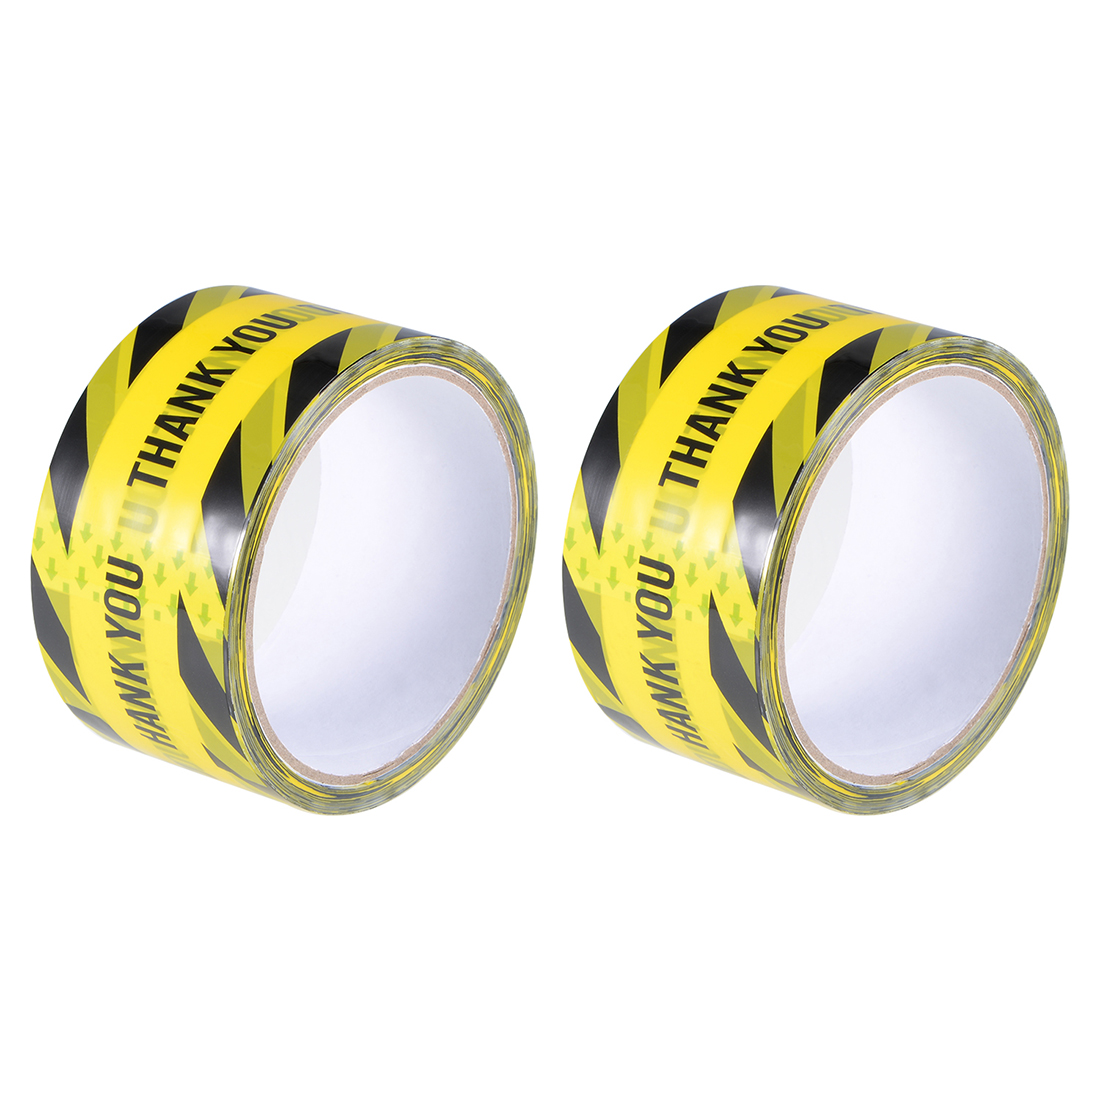 Caution Warning Stripe Tape THANK YOU Marking, 82 Ft x 2 Inch Yellow Black 2Pcs